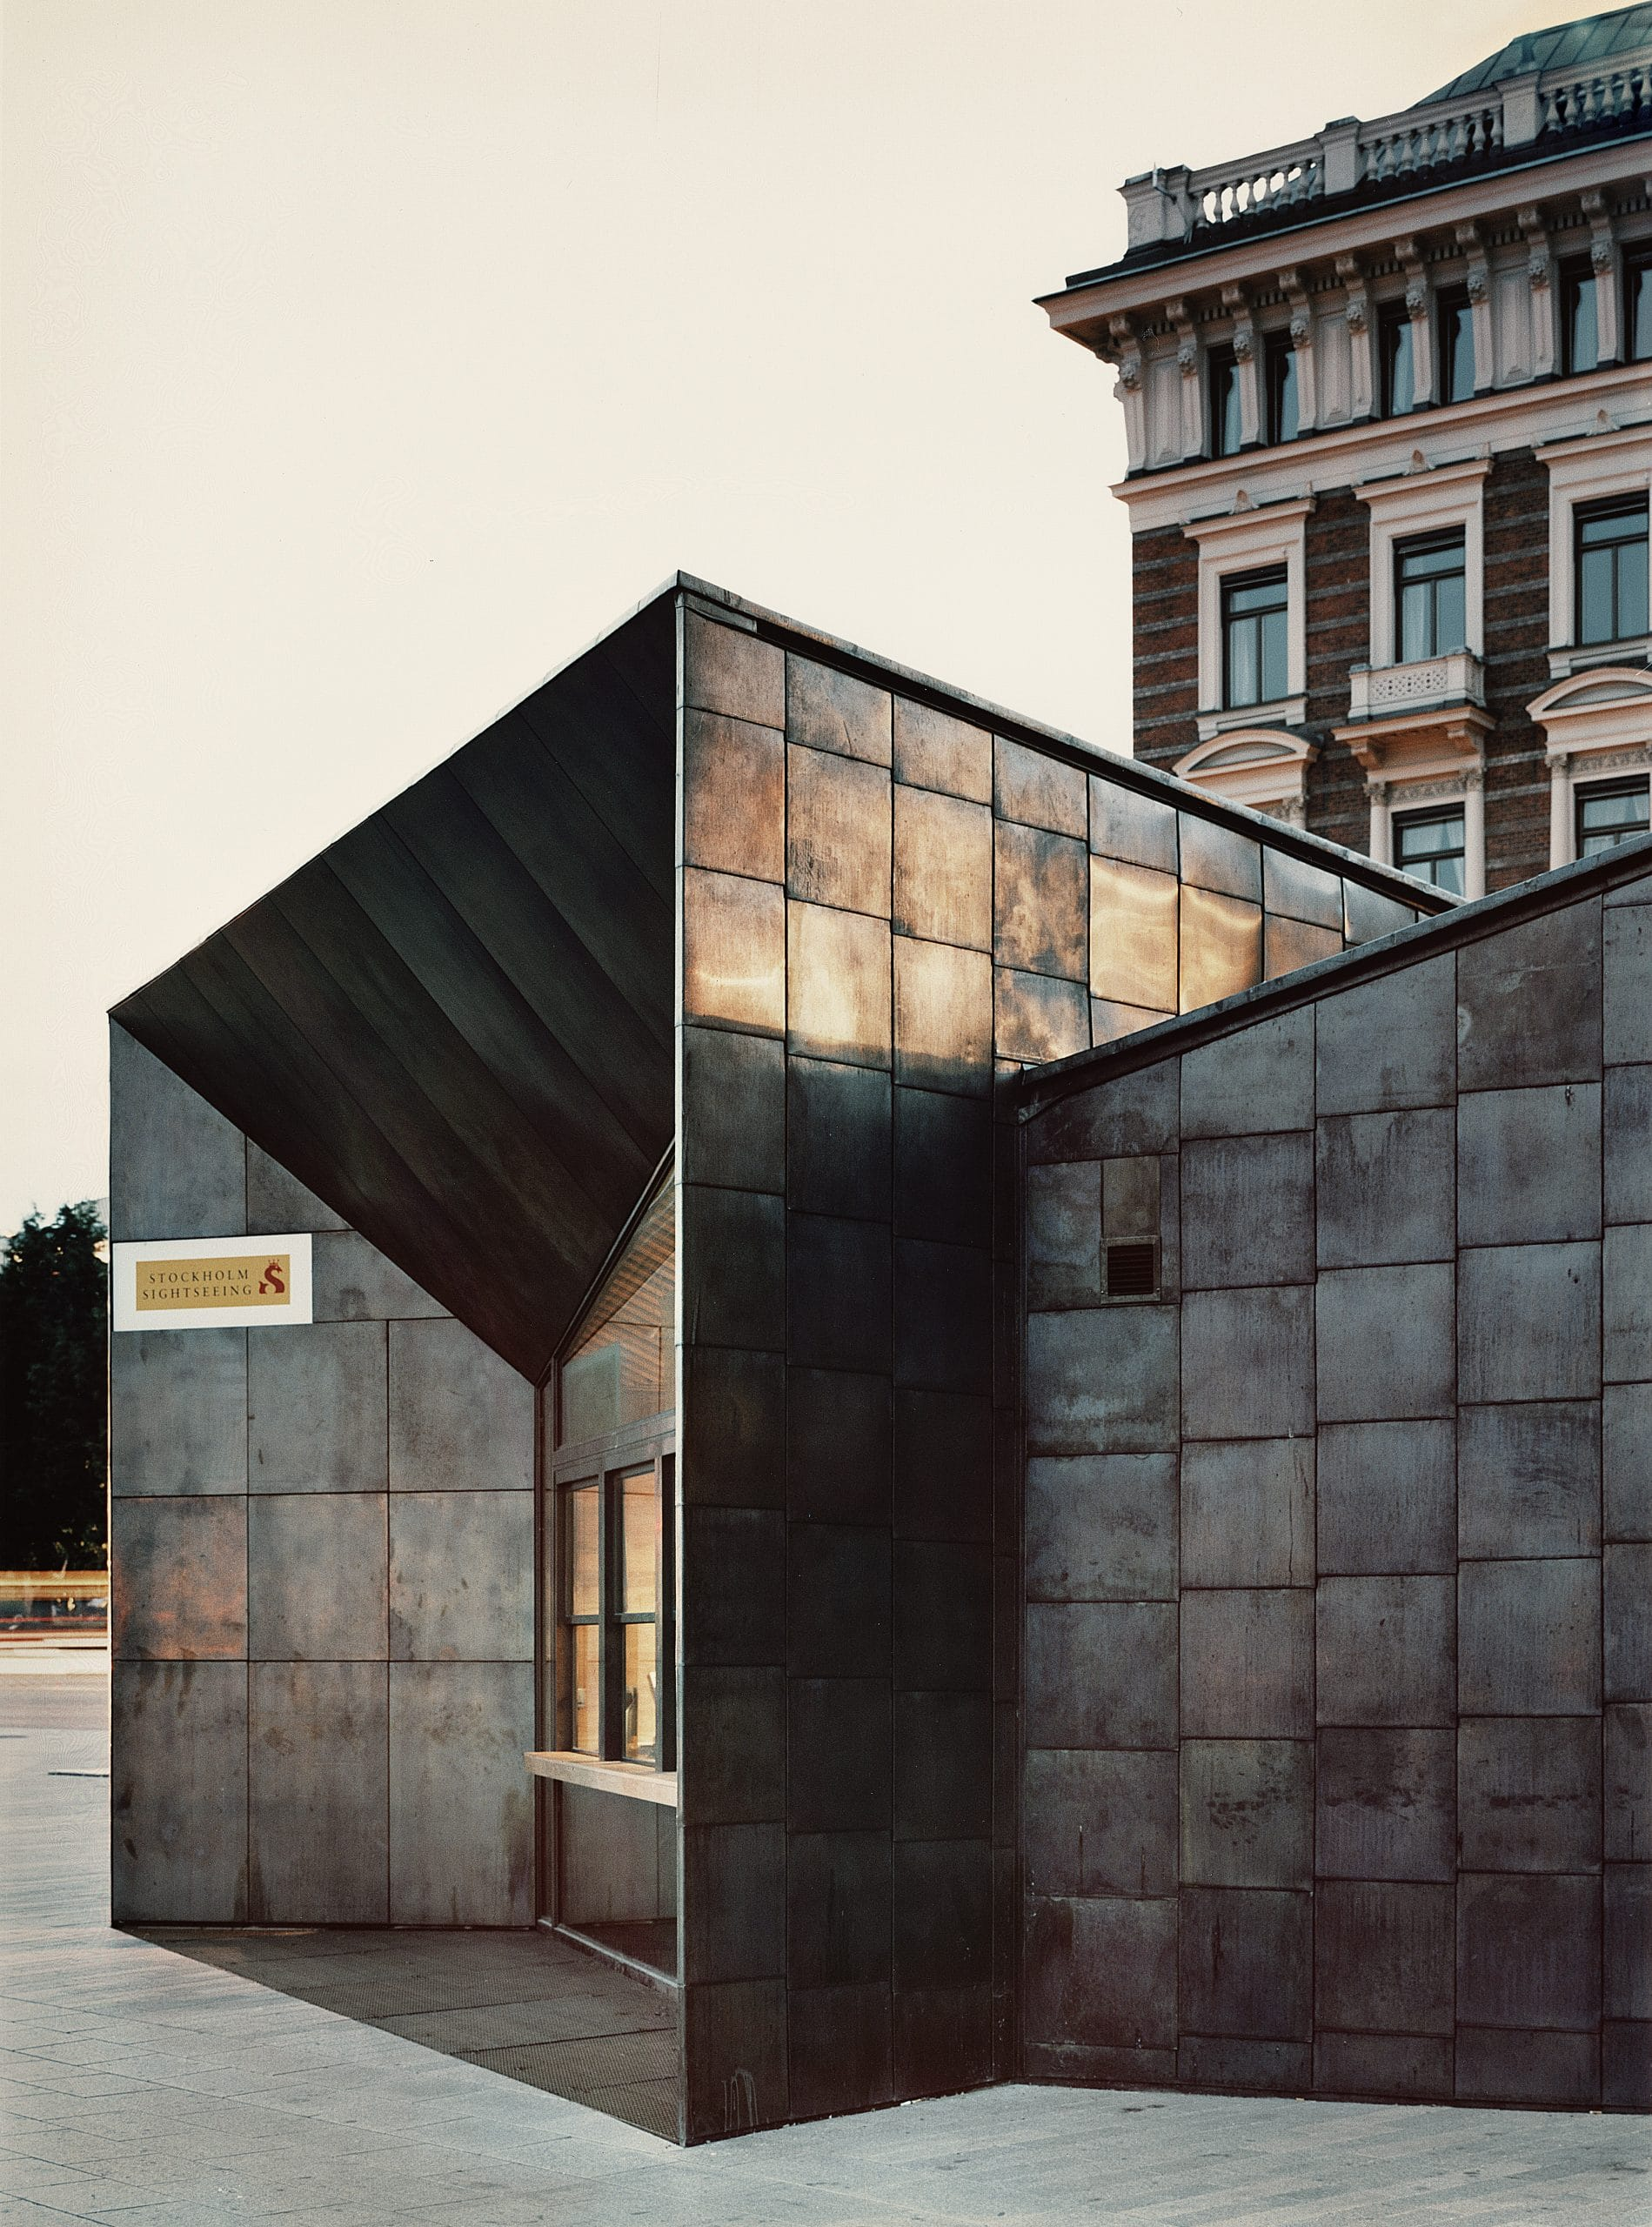 Entrance facade of Strimkajen Ferry Terminal in Sweden. Walls are made from Nordic Brass copper by Aurubis and Nordic Copper.